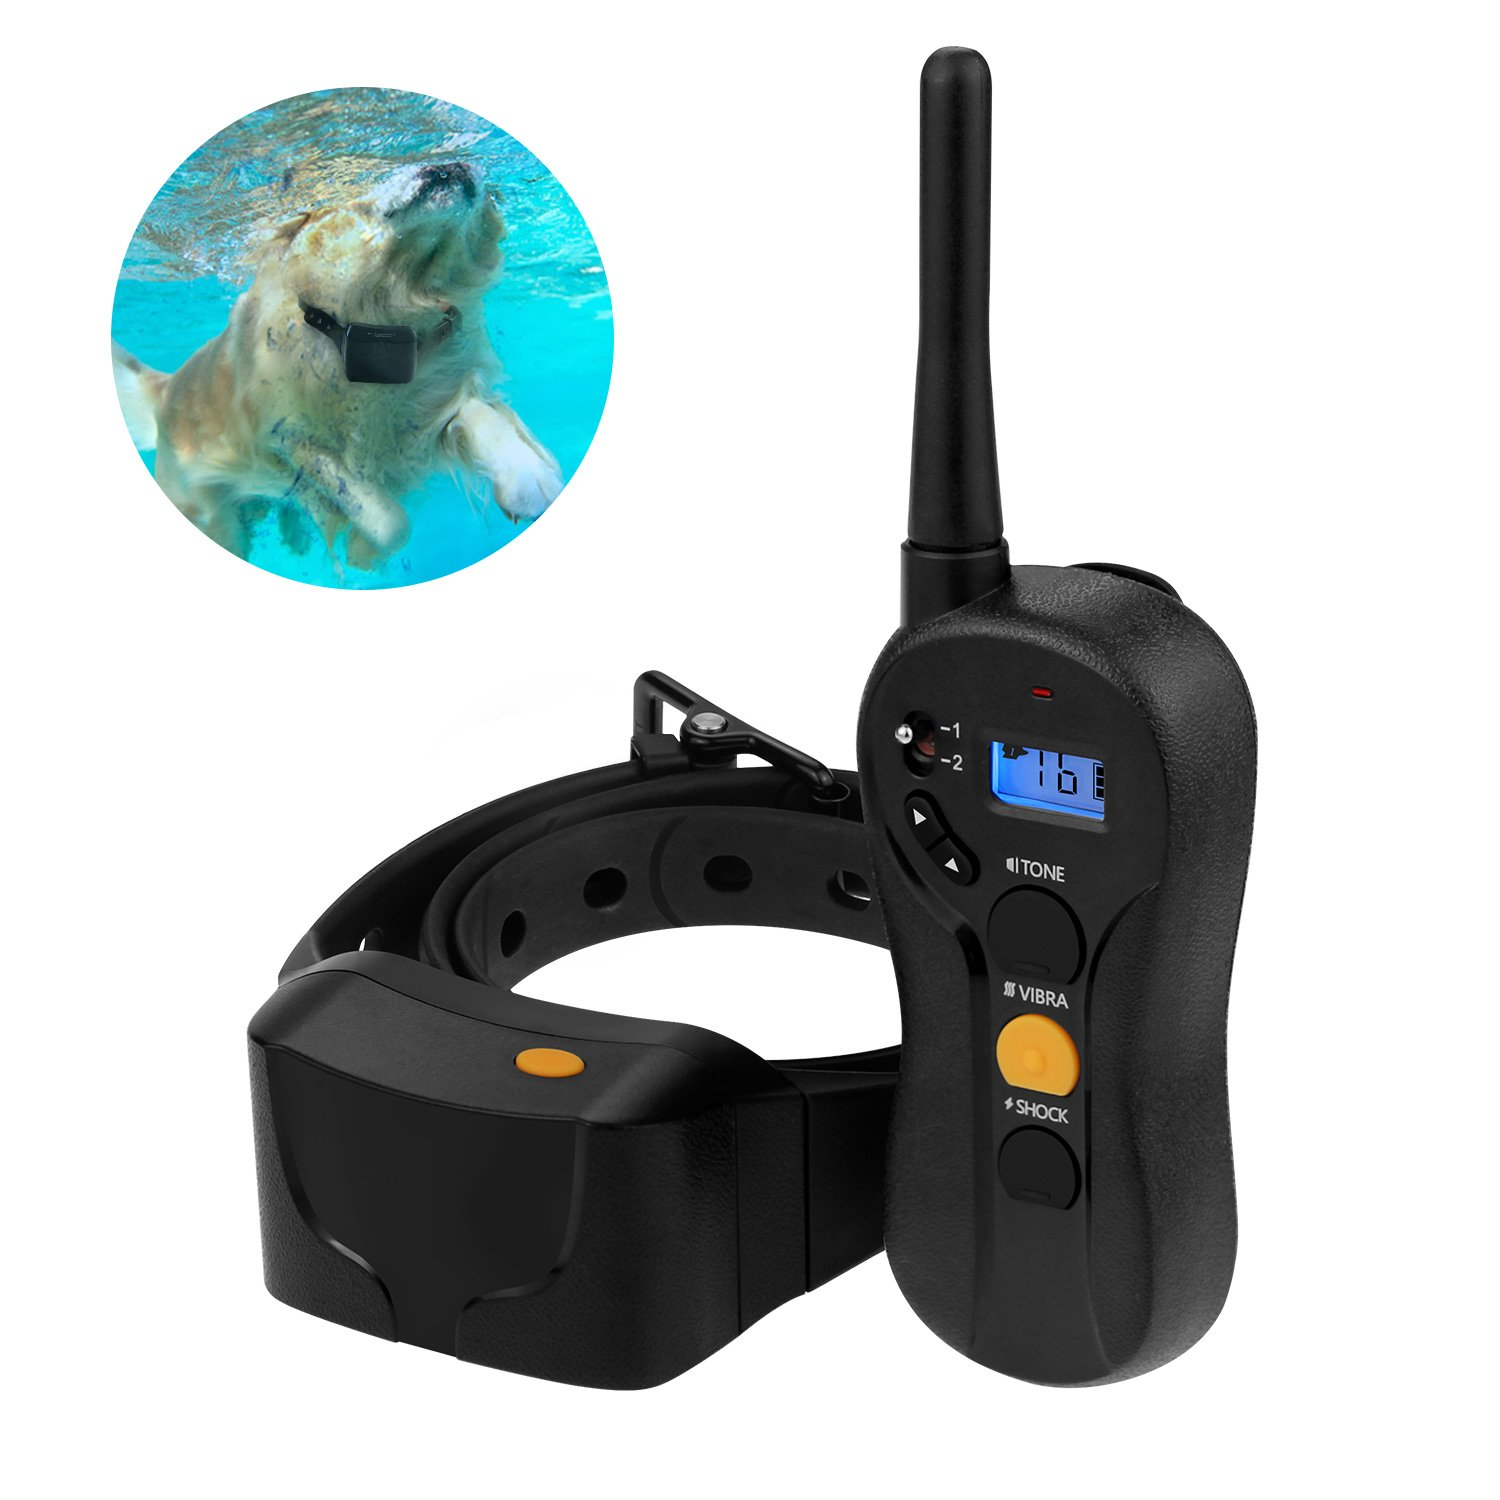 Dog Training Collar with Remote 656 Yard Range Feline Be Mine Removable Shock, Vibration and Beep Modes Large, Medium and Small Dogs Over 15 lbs Waterproof Electric E Collar Rechargeable